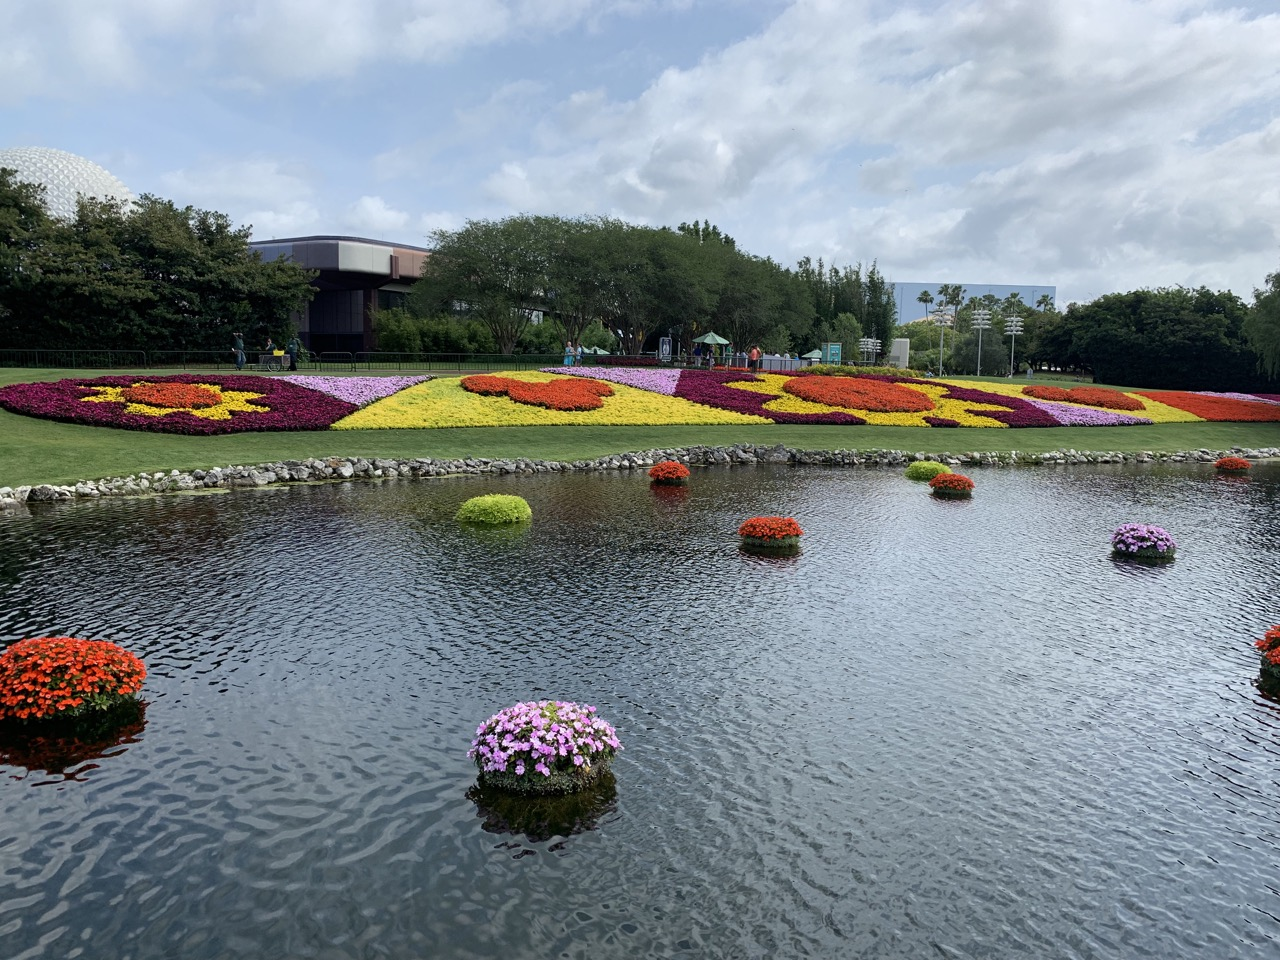 disney world trip report early summer 2019 day six 37 flowers.jpeg